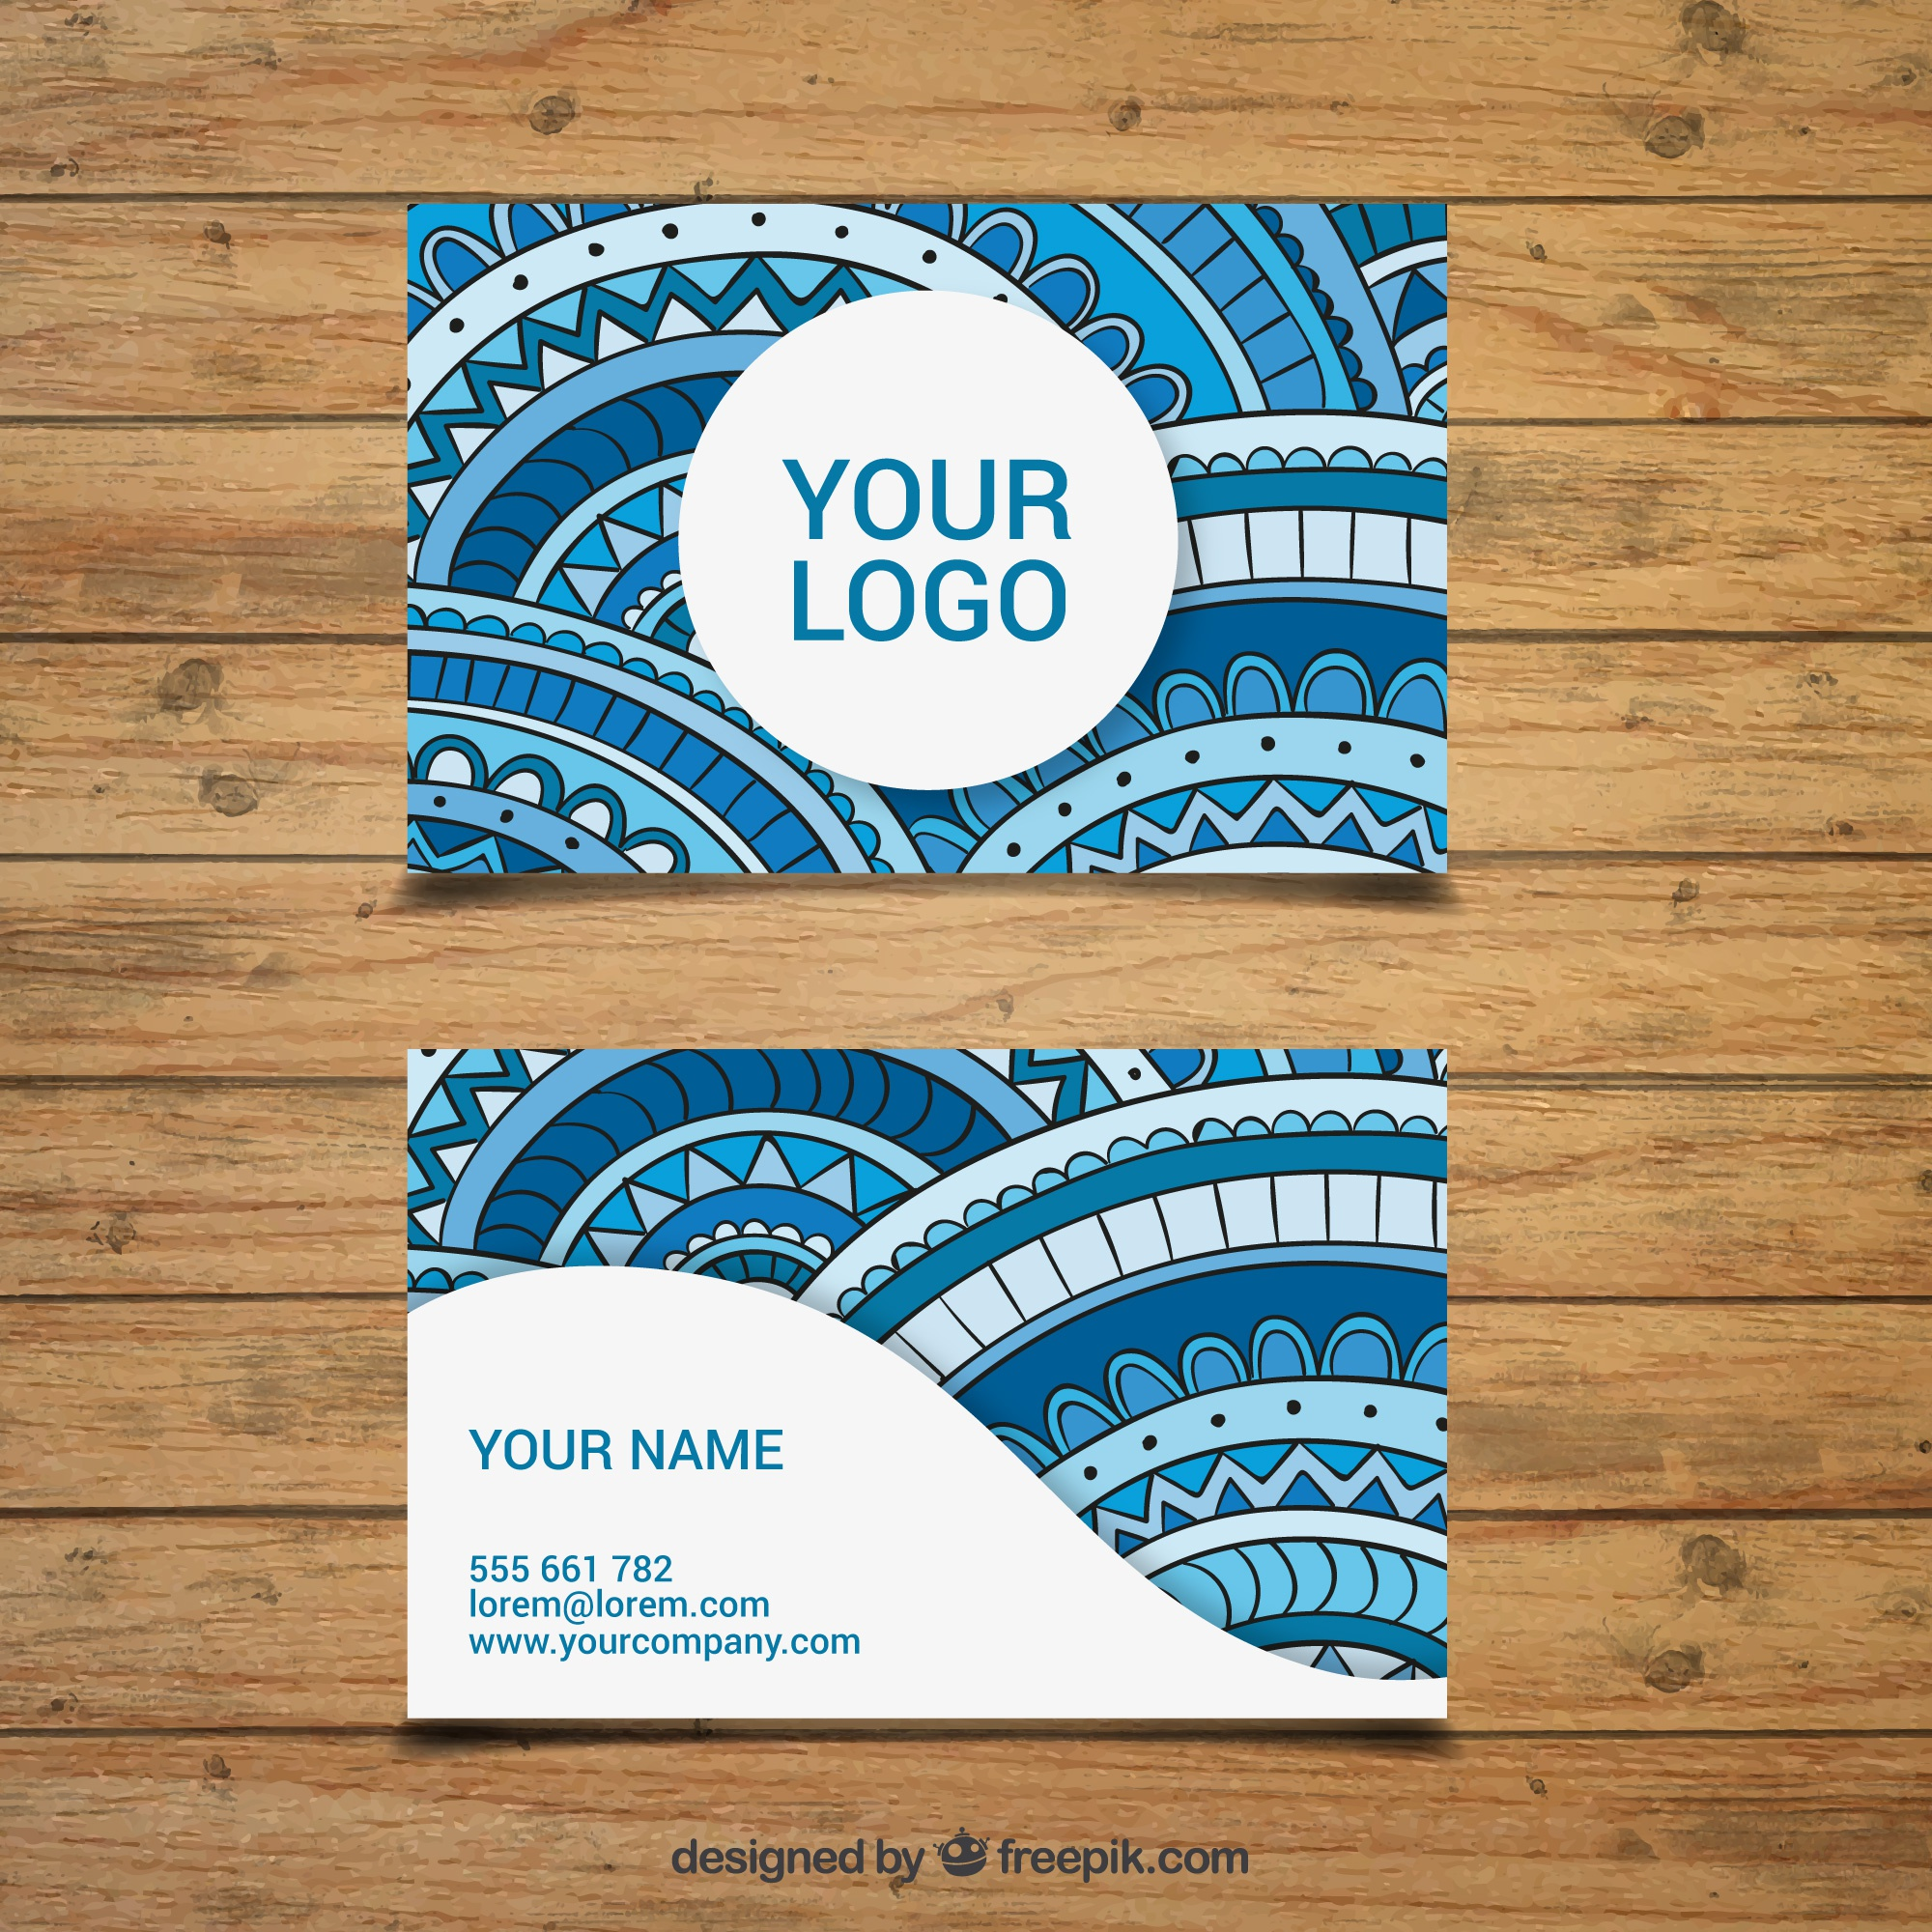 Great corporate card with decoration in blue tones